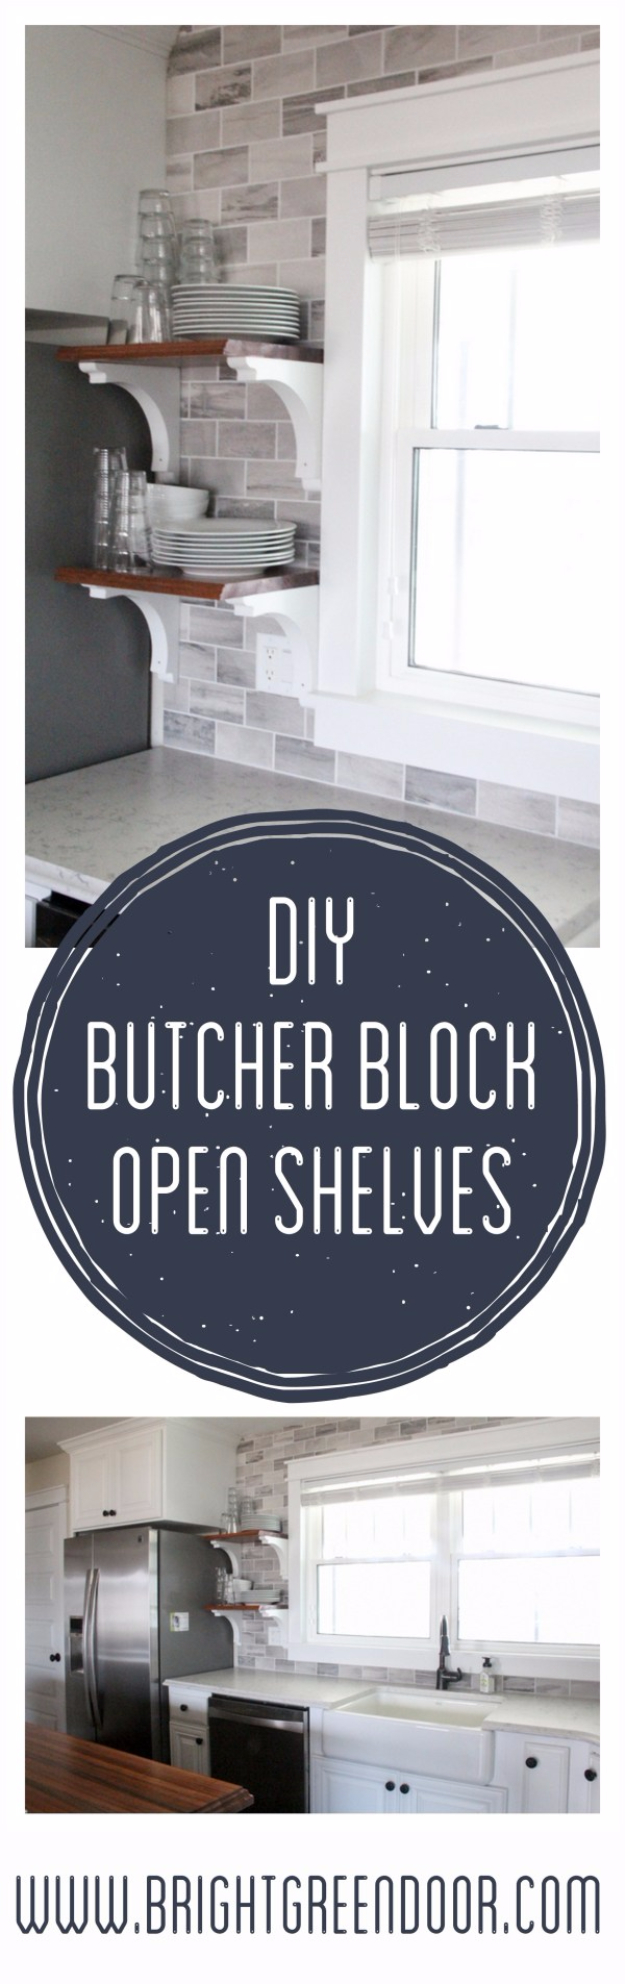 DIY Farmhouse Style Decor Ideas for the Kitchen - DIY Butcher Block Open Shelves - Rustic Farm House Ideas for Furniture, Paint Colors, Farm House Decoration for Home Decor in The Kitchen - Wall Art, Rugs, Countertops, Lights and Kitchen Accessories #farmhouse #diydecor